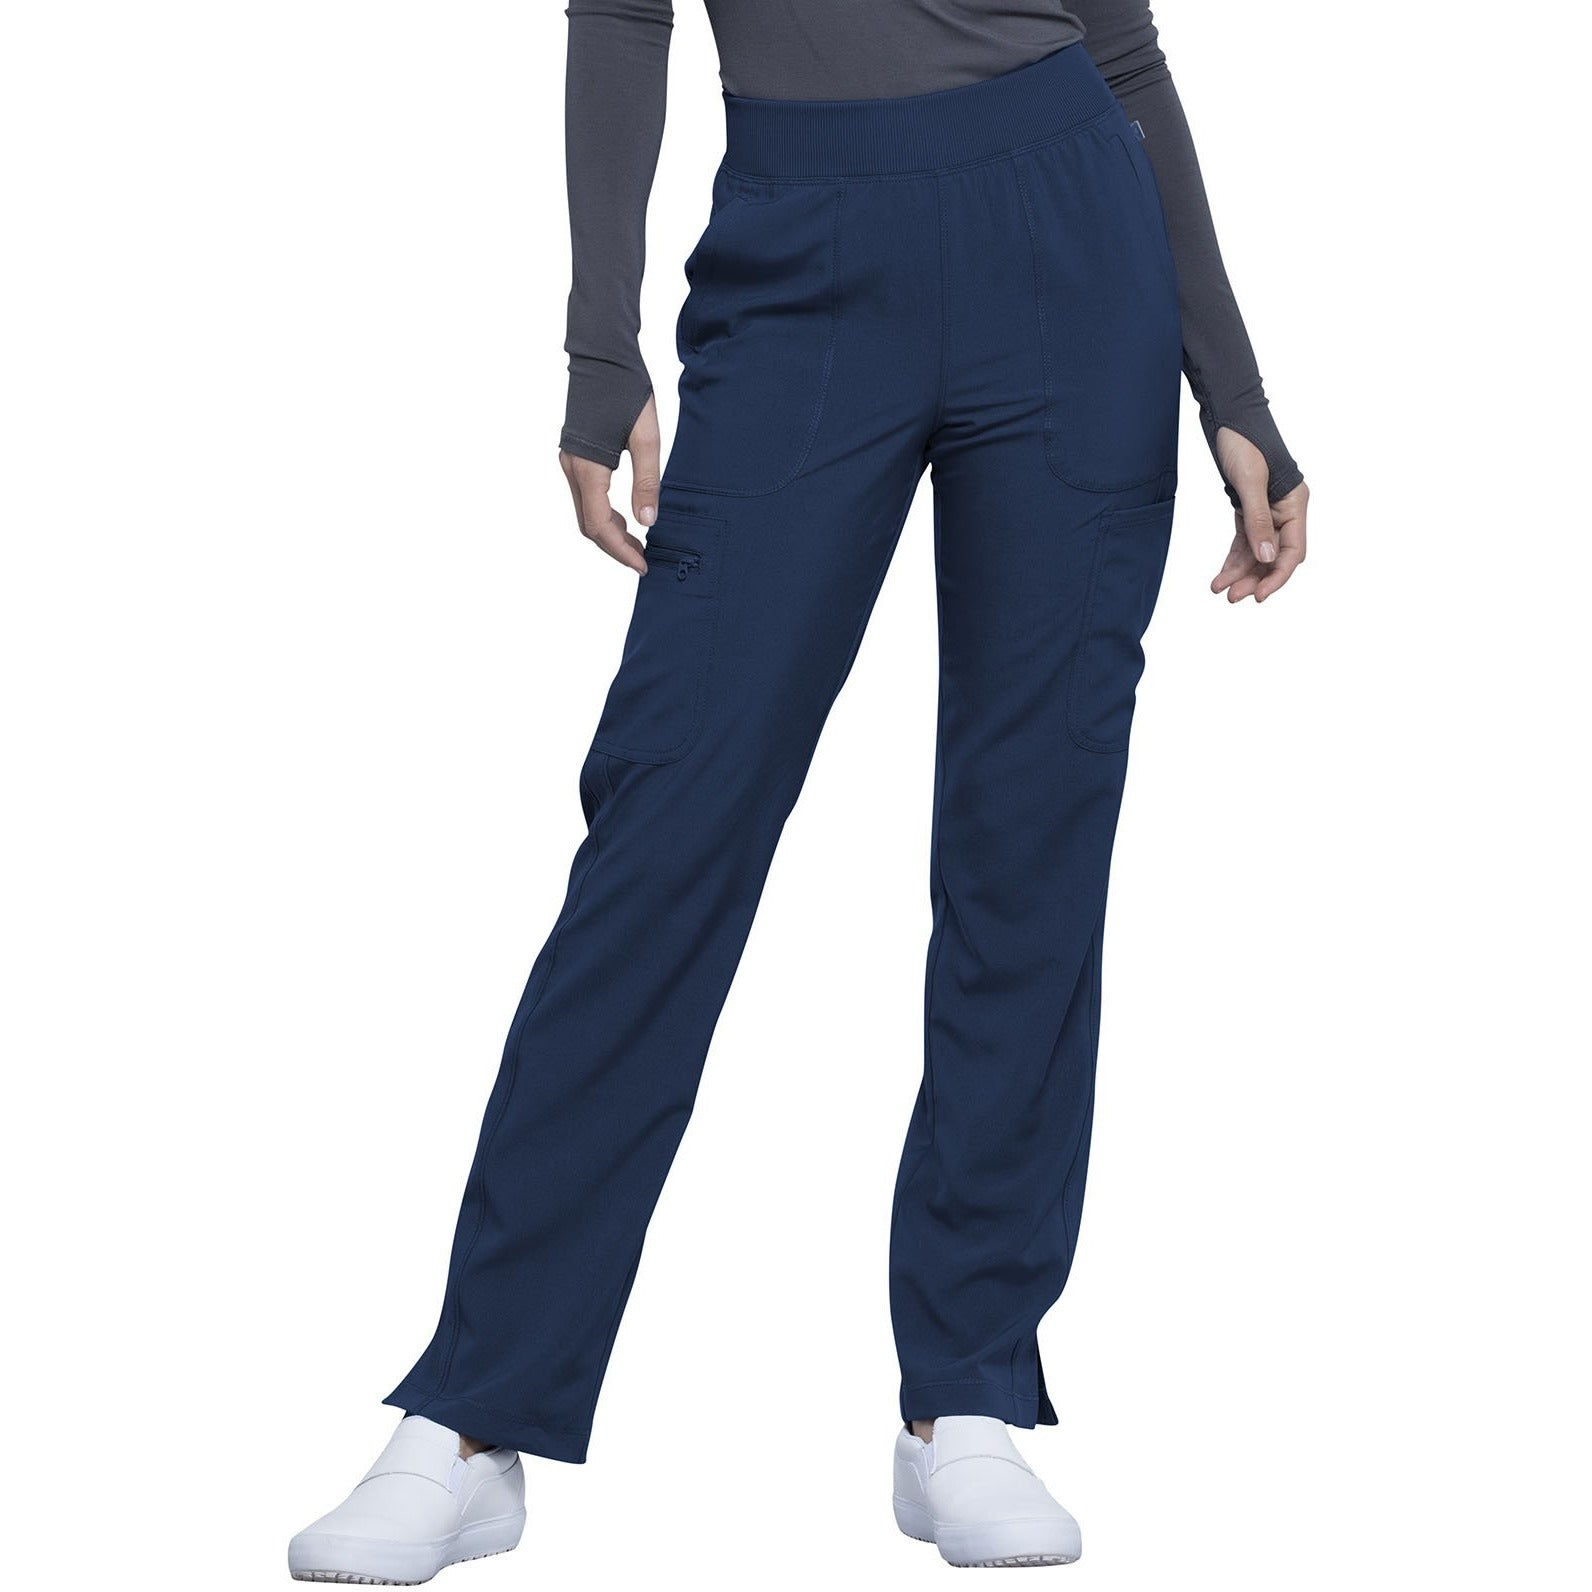 Mid Rise Tapered Leg Pull-on Pant CK065A (XXS-L) INSEAM 30.5""